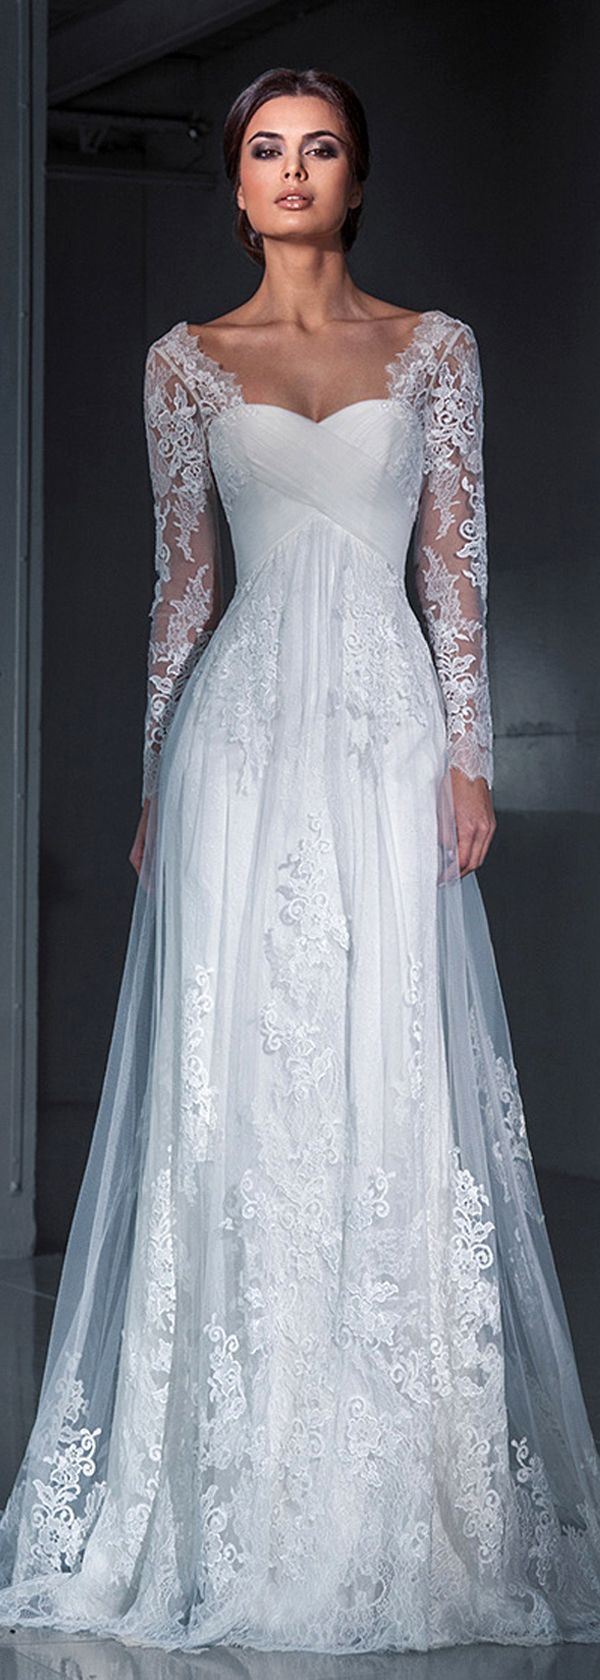 Perfect Comprar Vestidos De Novia Baratos Online Image - All Wedding ...